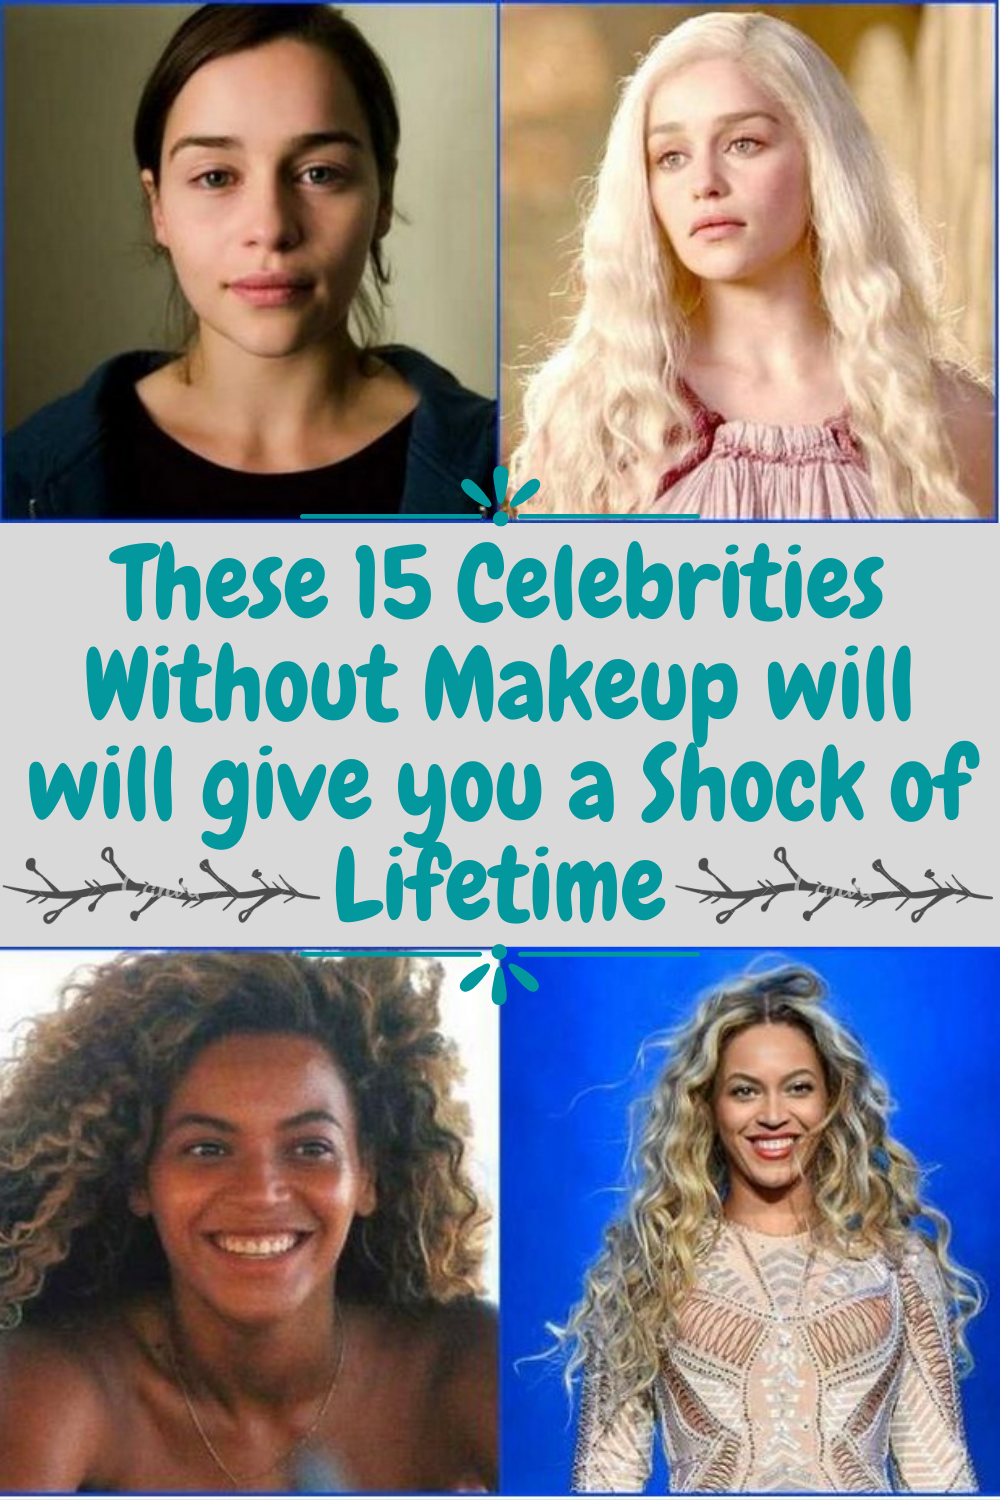 Photo of These 15 Celebrities Without Makeup will will give you a Shock of Lifetime